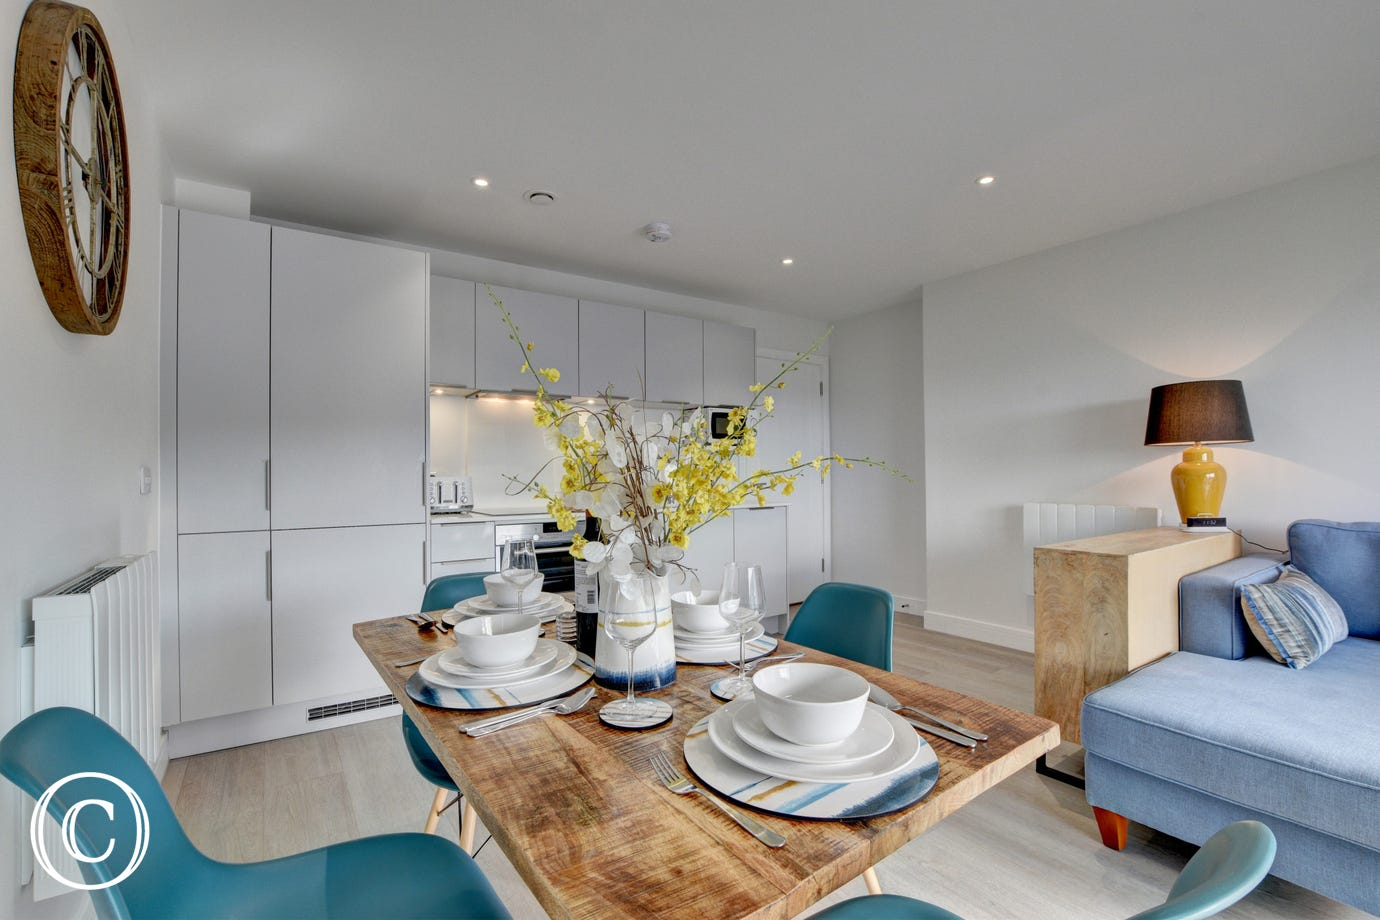 The well equipped kitchen area with granite worktops adds to the style, together with a dining table